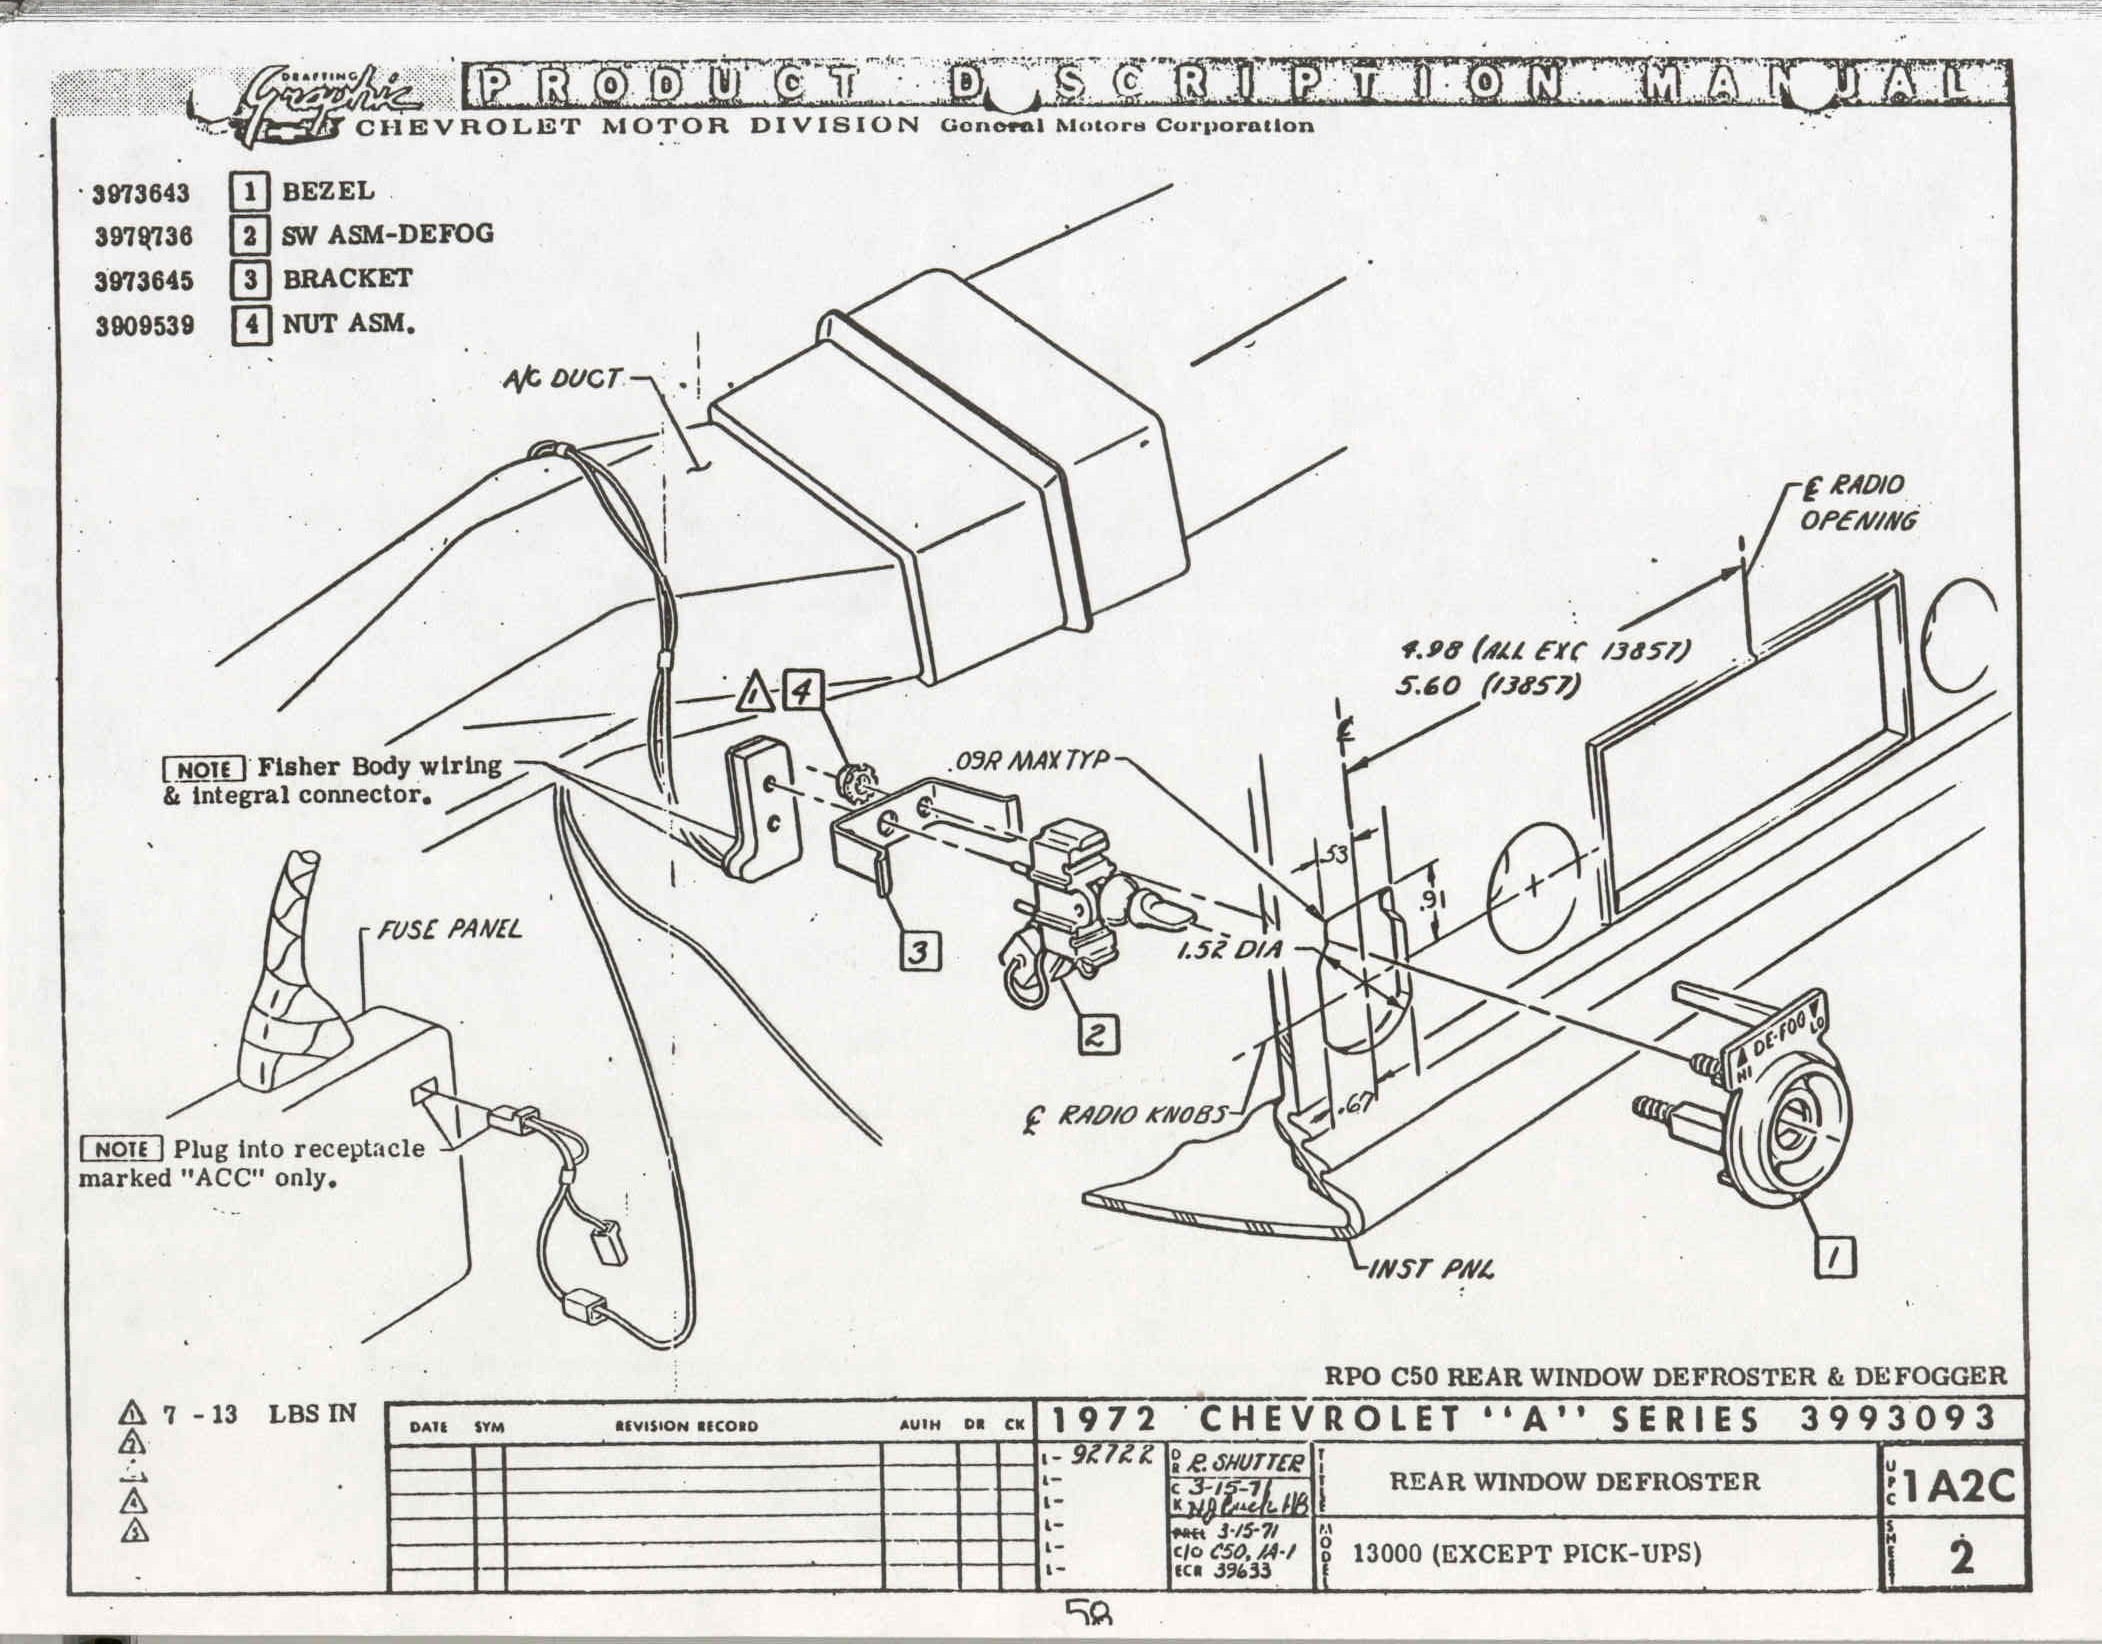 switchdiagram 1970 chevrolet wiring diagram readingrat net,7 Pin Rocker Switch Wiring Diagram